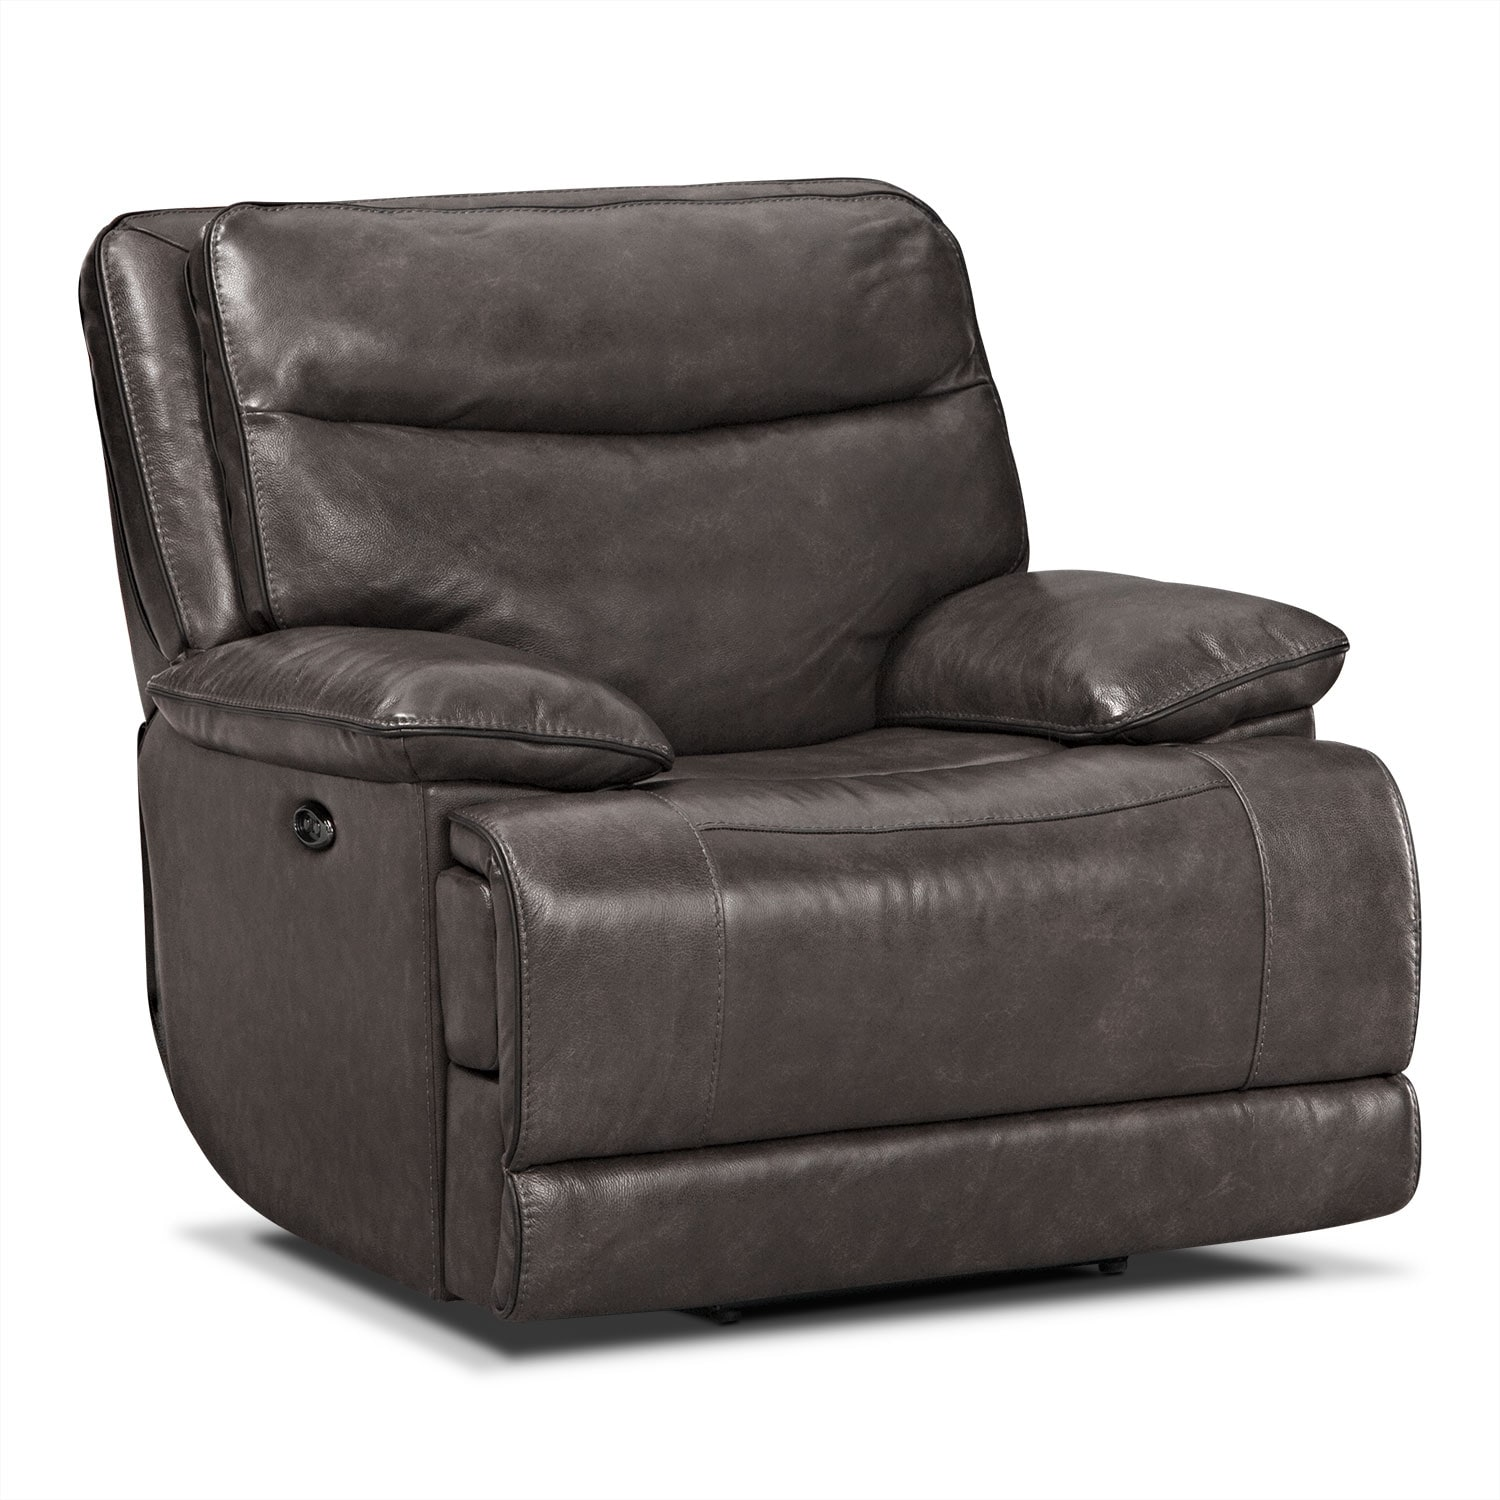 Monaco Power Recliner